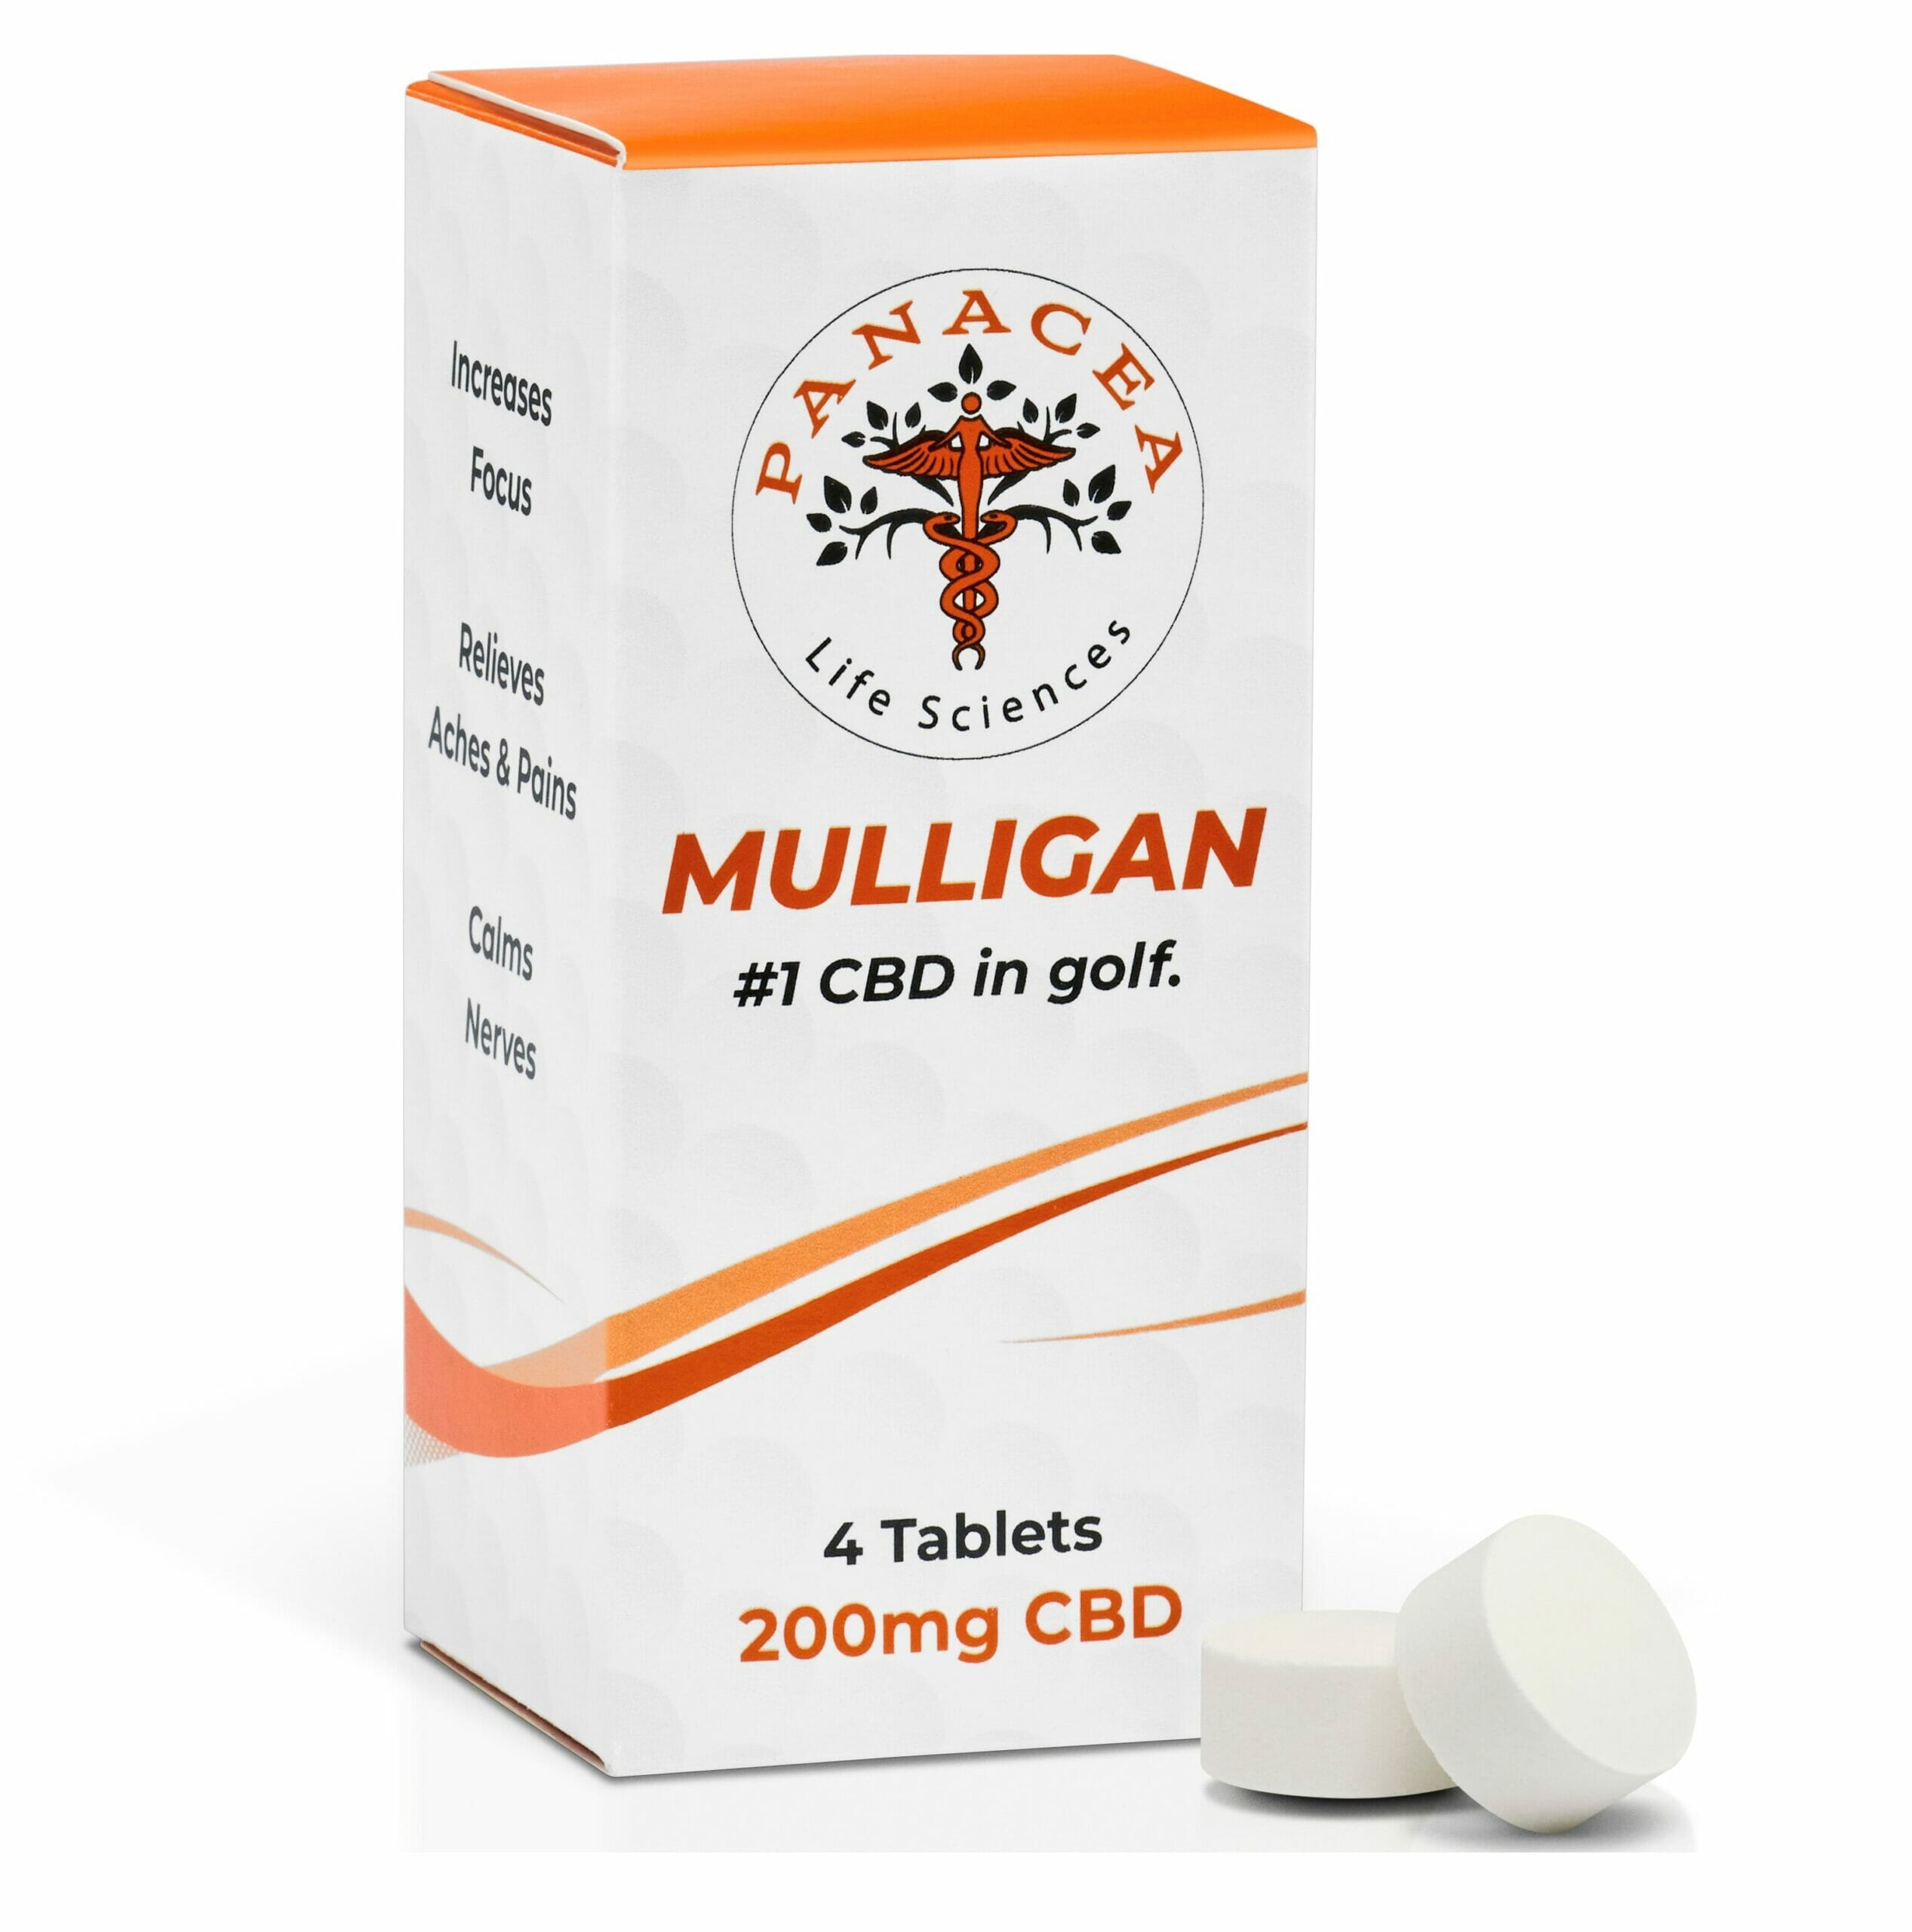 mulligan CBD tablets for Golf